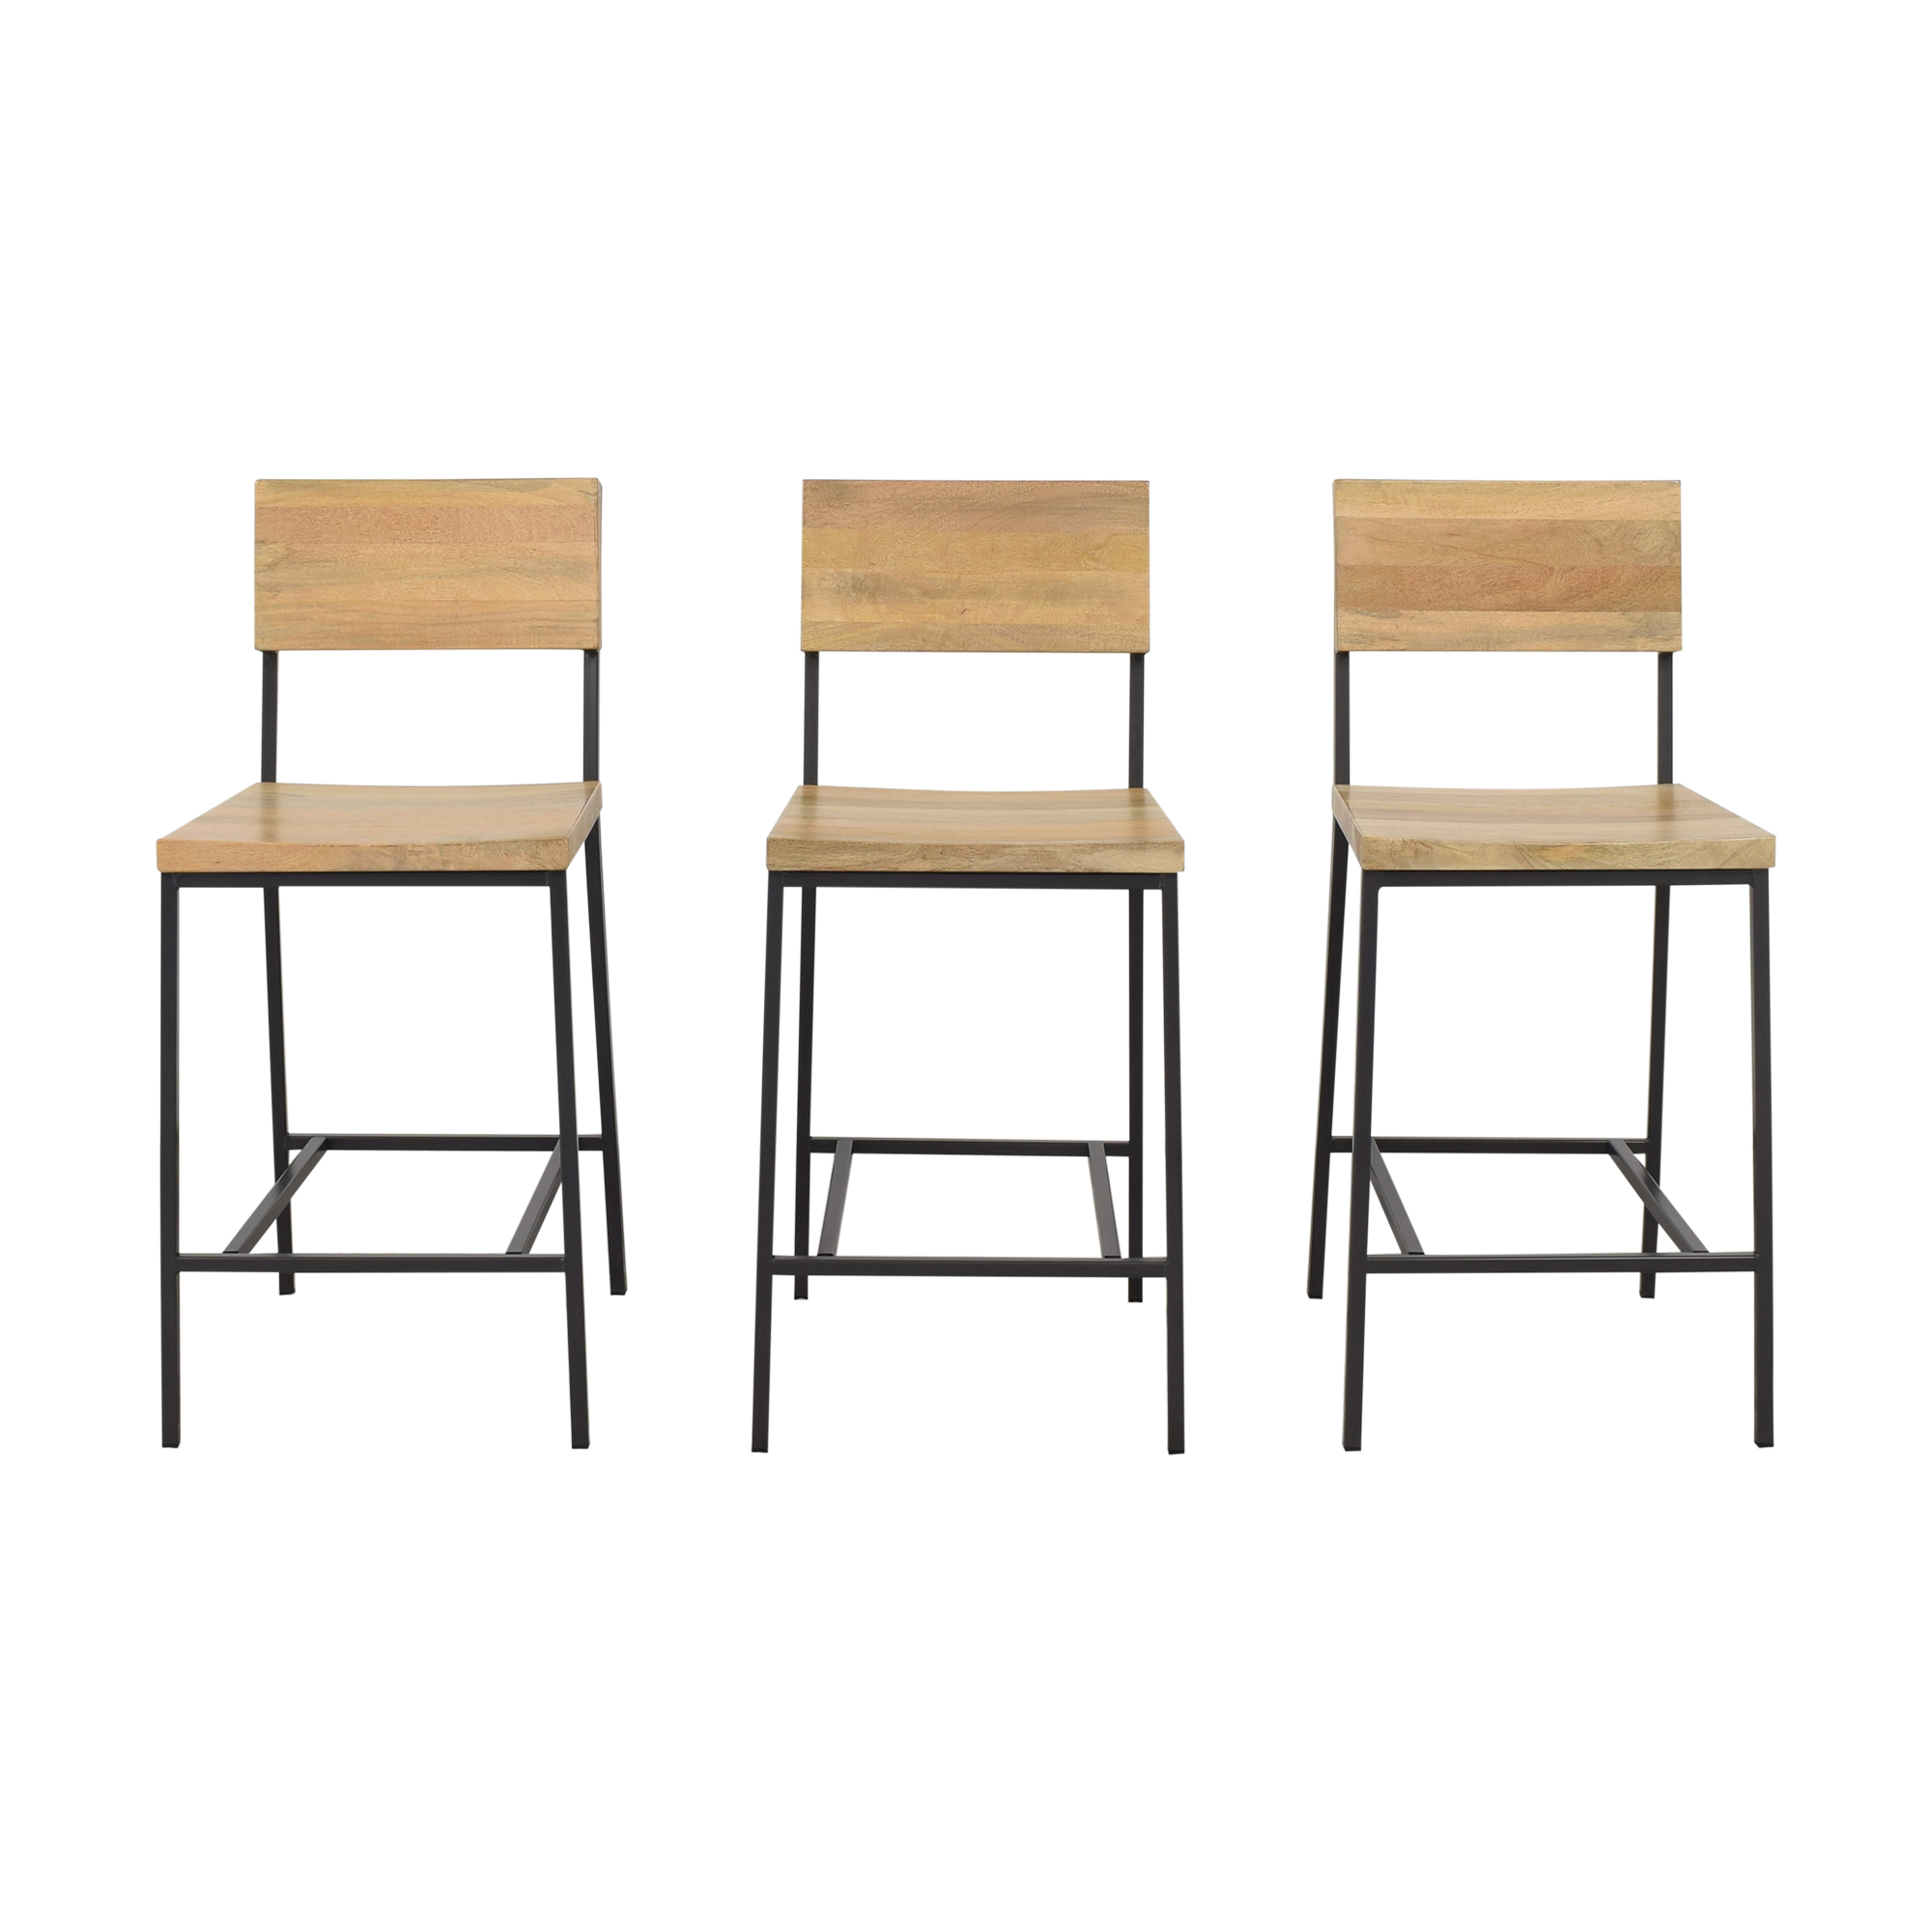 buy West Elm West Elm Rustic Bar Stools Mango Wood online